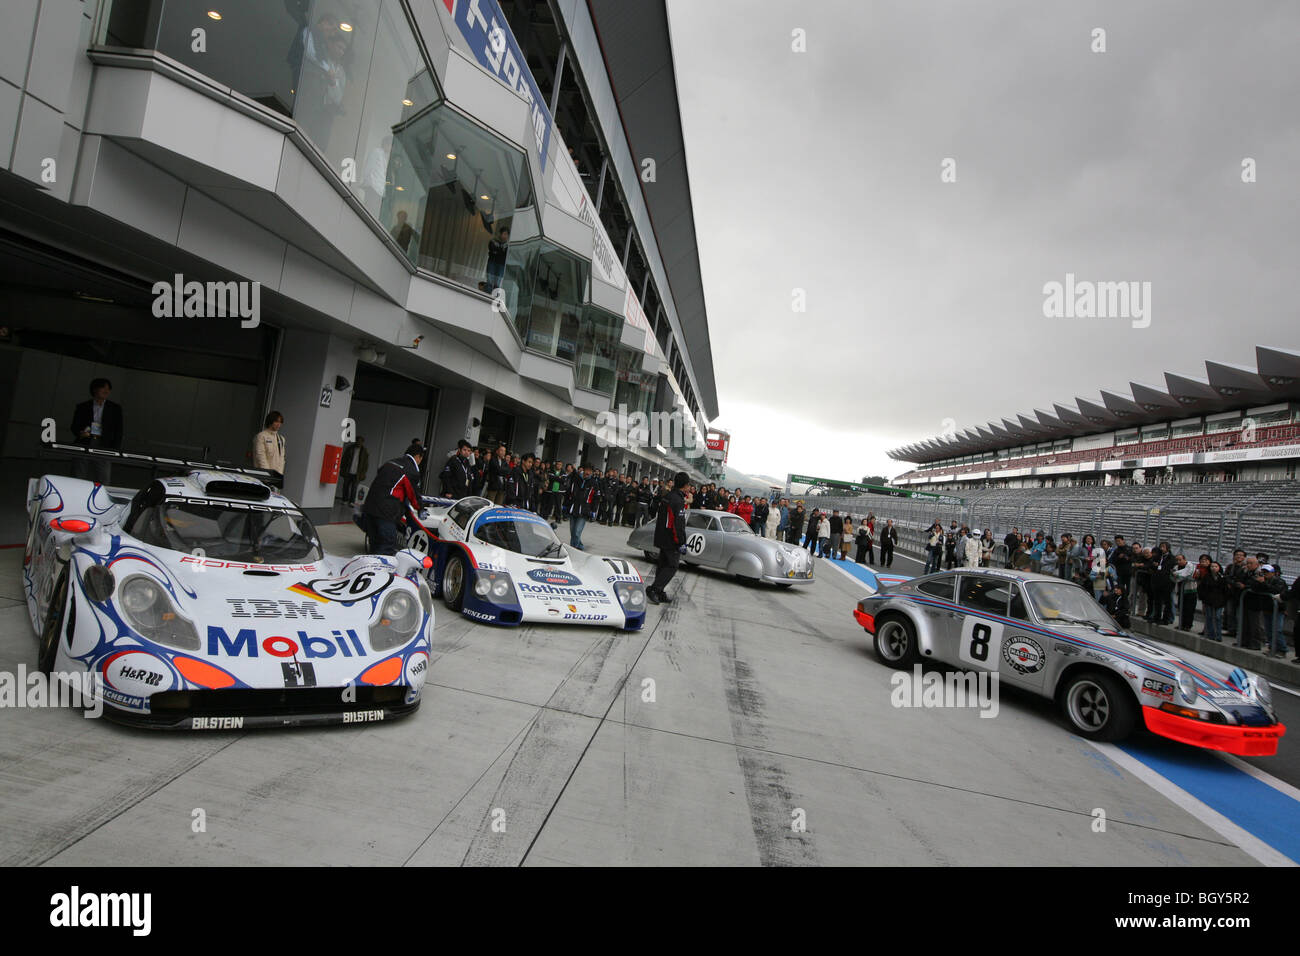 Porsche museum cars (left to right) - 1998 911 GT1 (Mobil), 1987 962C (Rothmans), 1951 356SL Coupe, and 1973 911 - Stock Image